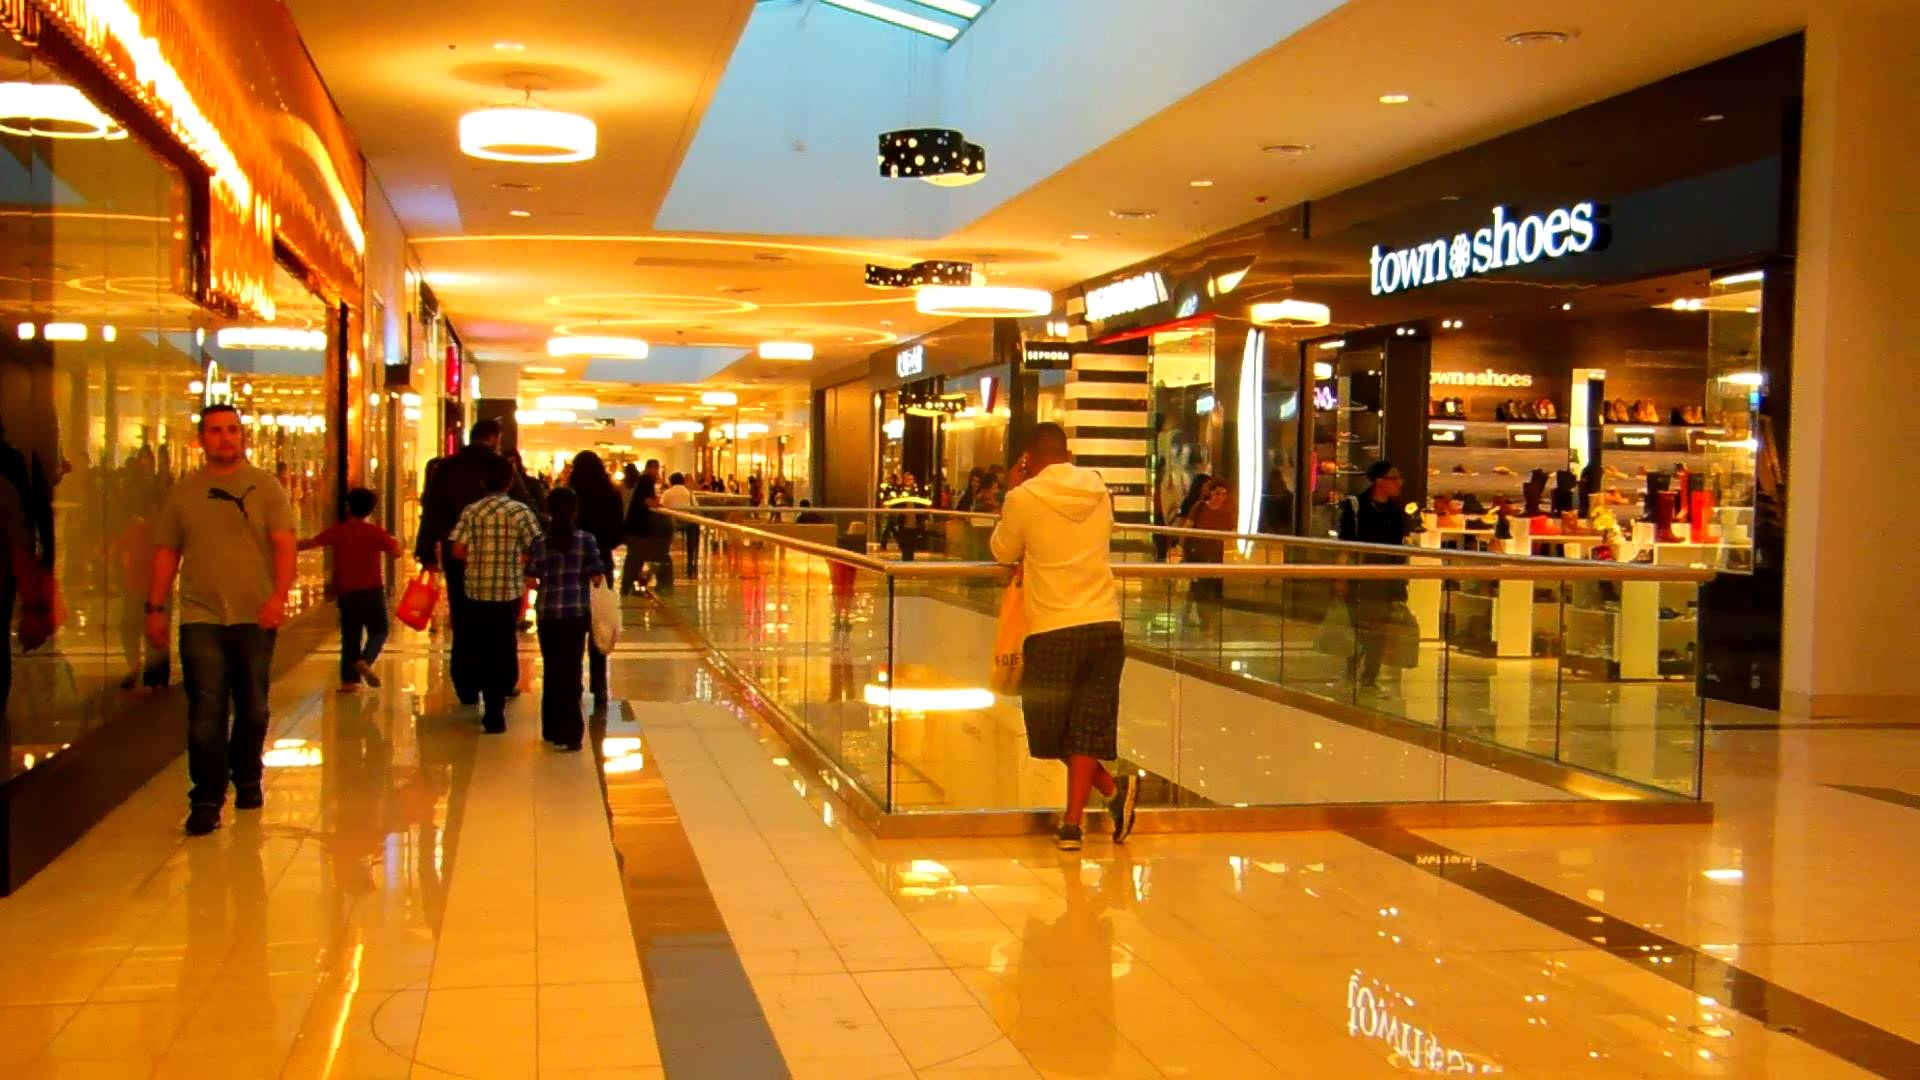 suburban regional shopping malls can the Check out our top free essays on suburban regional shopping malls to help you write your own essay.